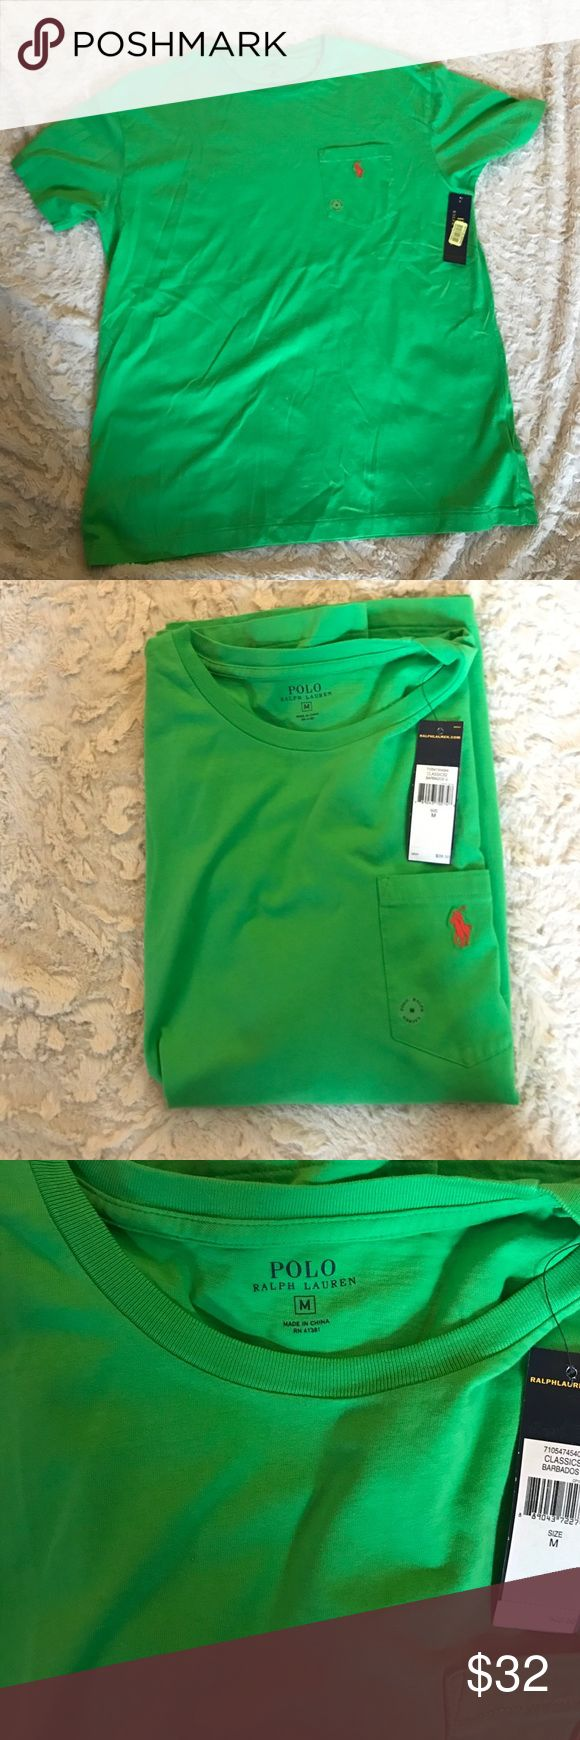 NWT Polo Ralph Lauren Men's Shirt Size Medium New with Tags Color Green Short Sleeve 100% Cotton Shirt.  I Guarantee Authentication Of this Nice Shirt. Please Check My Other Listings And Make A Bundle. Polo by Ralph Lauren Shirts Tees - Short Sleeve